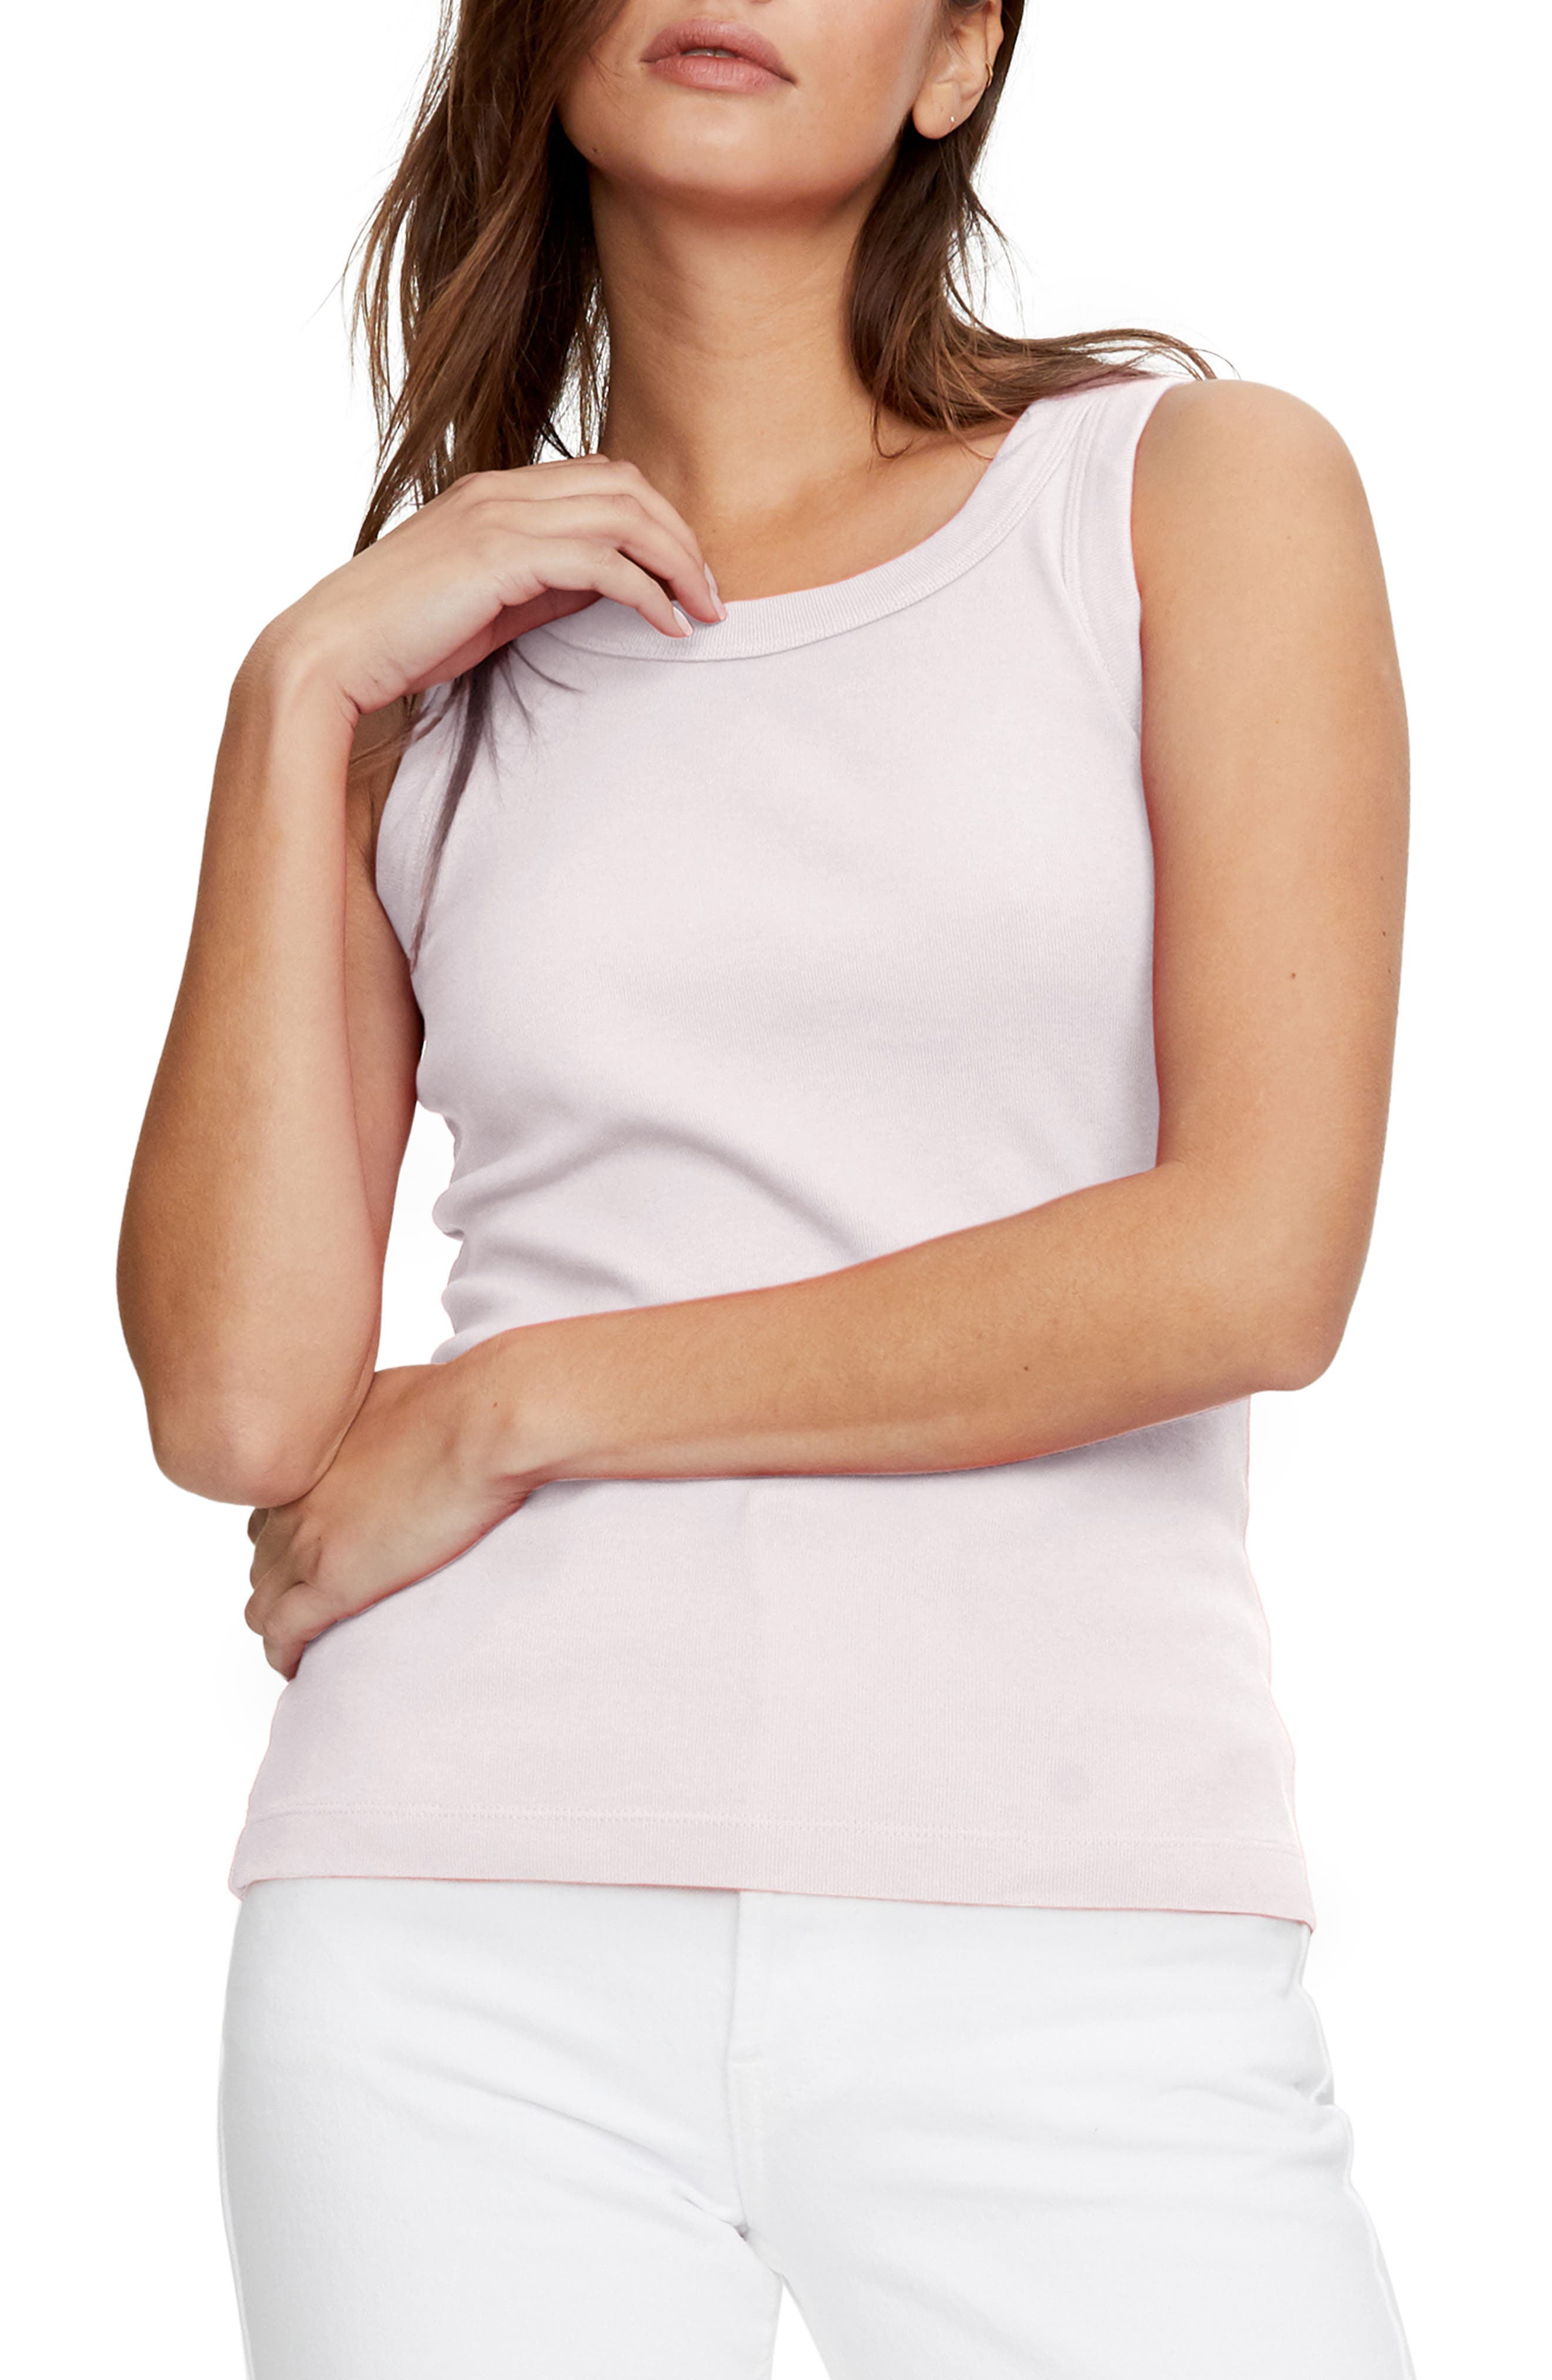 Start off your summery looks with a staple tank top done in a soft cotton knit. Style Name: Michael Stars Paloma Cotton Tank Top. Style Number: 6050766 1. Available in stores.